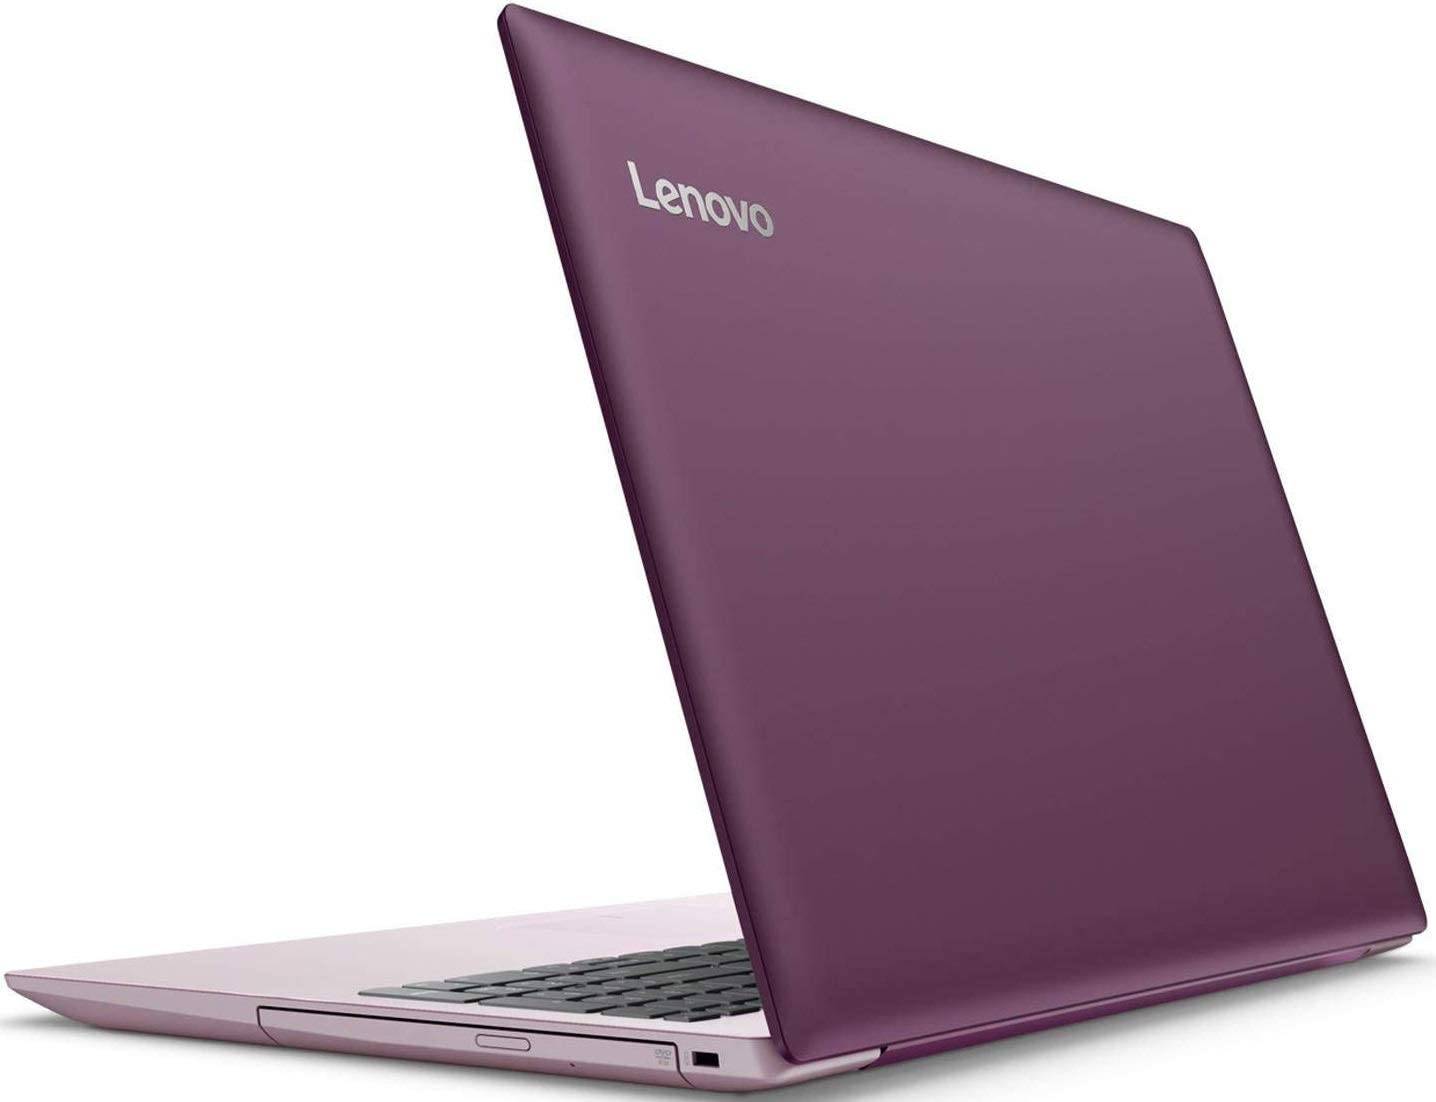 Newest Lenovo Ideapad 320 15.6 inch HD Premium Laptop, Intel Celeron N3350 Dual-Core, 4GB Memory, 128GB SSD, Bluetooth, Ethernet, USB 3.0, DVD-RW, 802.11ac, Webcam, Windows 10, Plum Purple